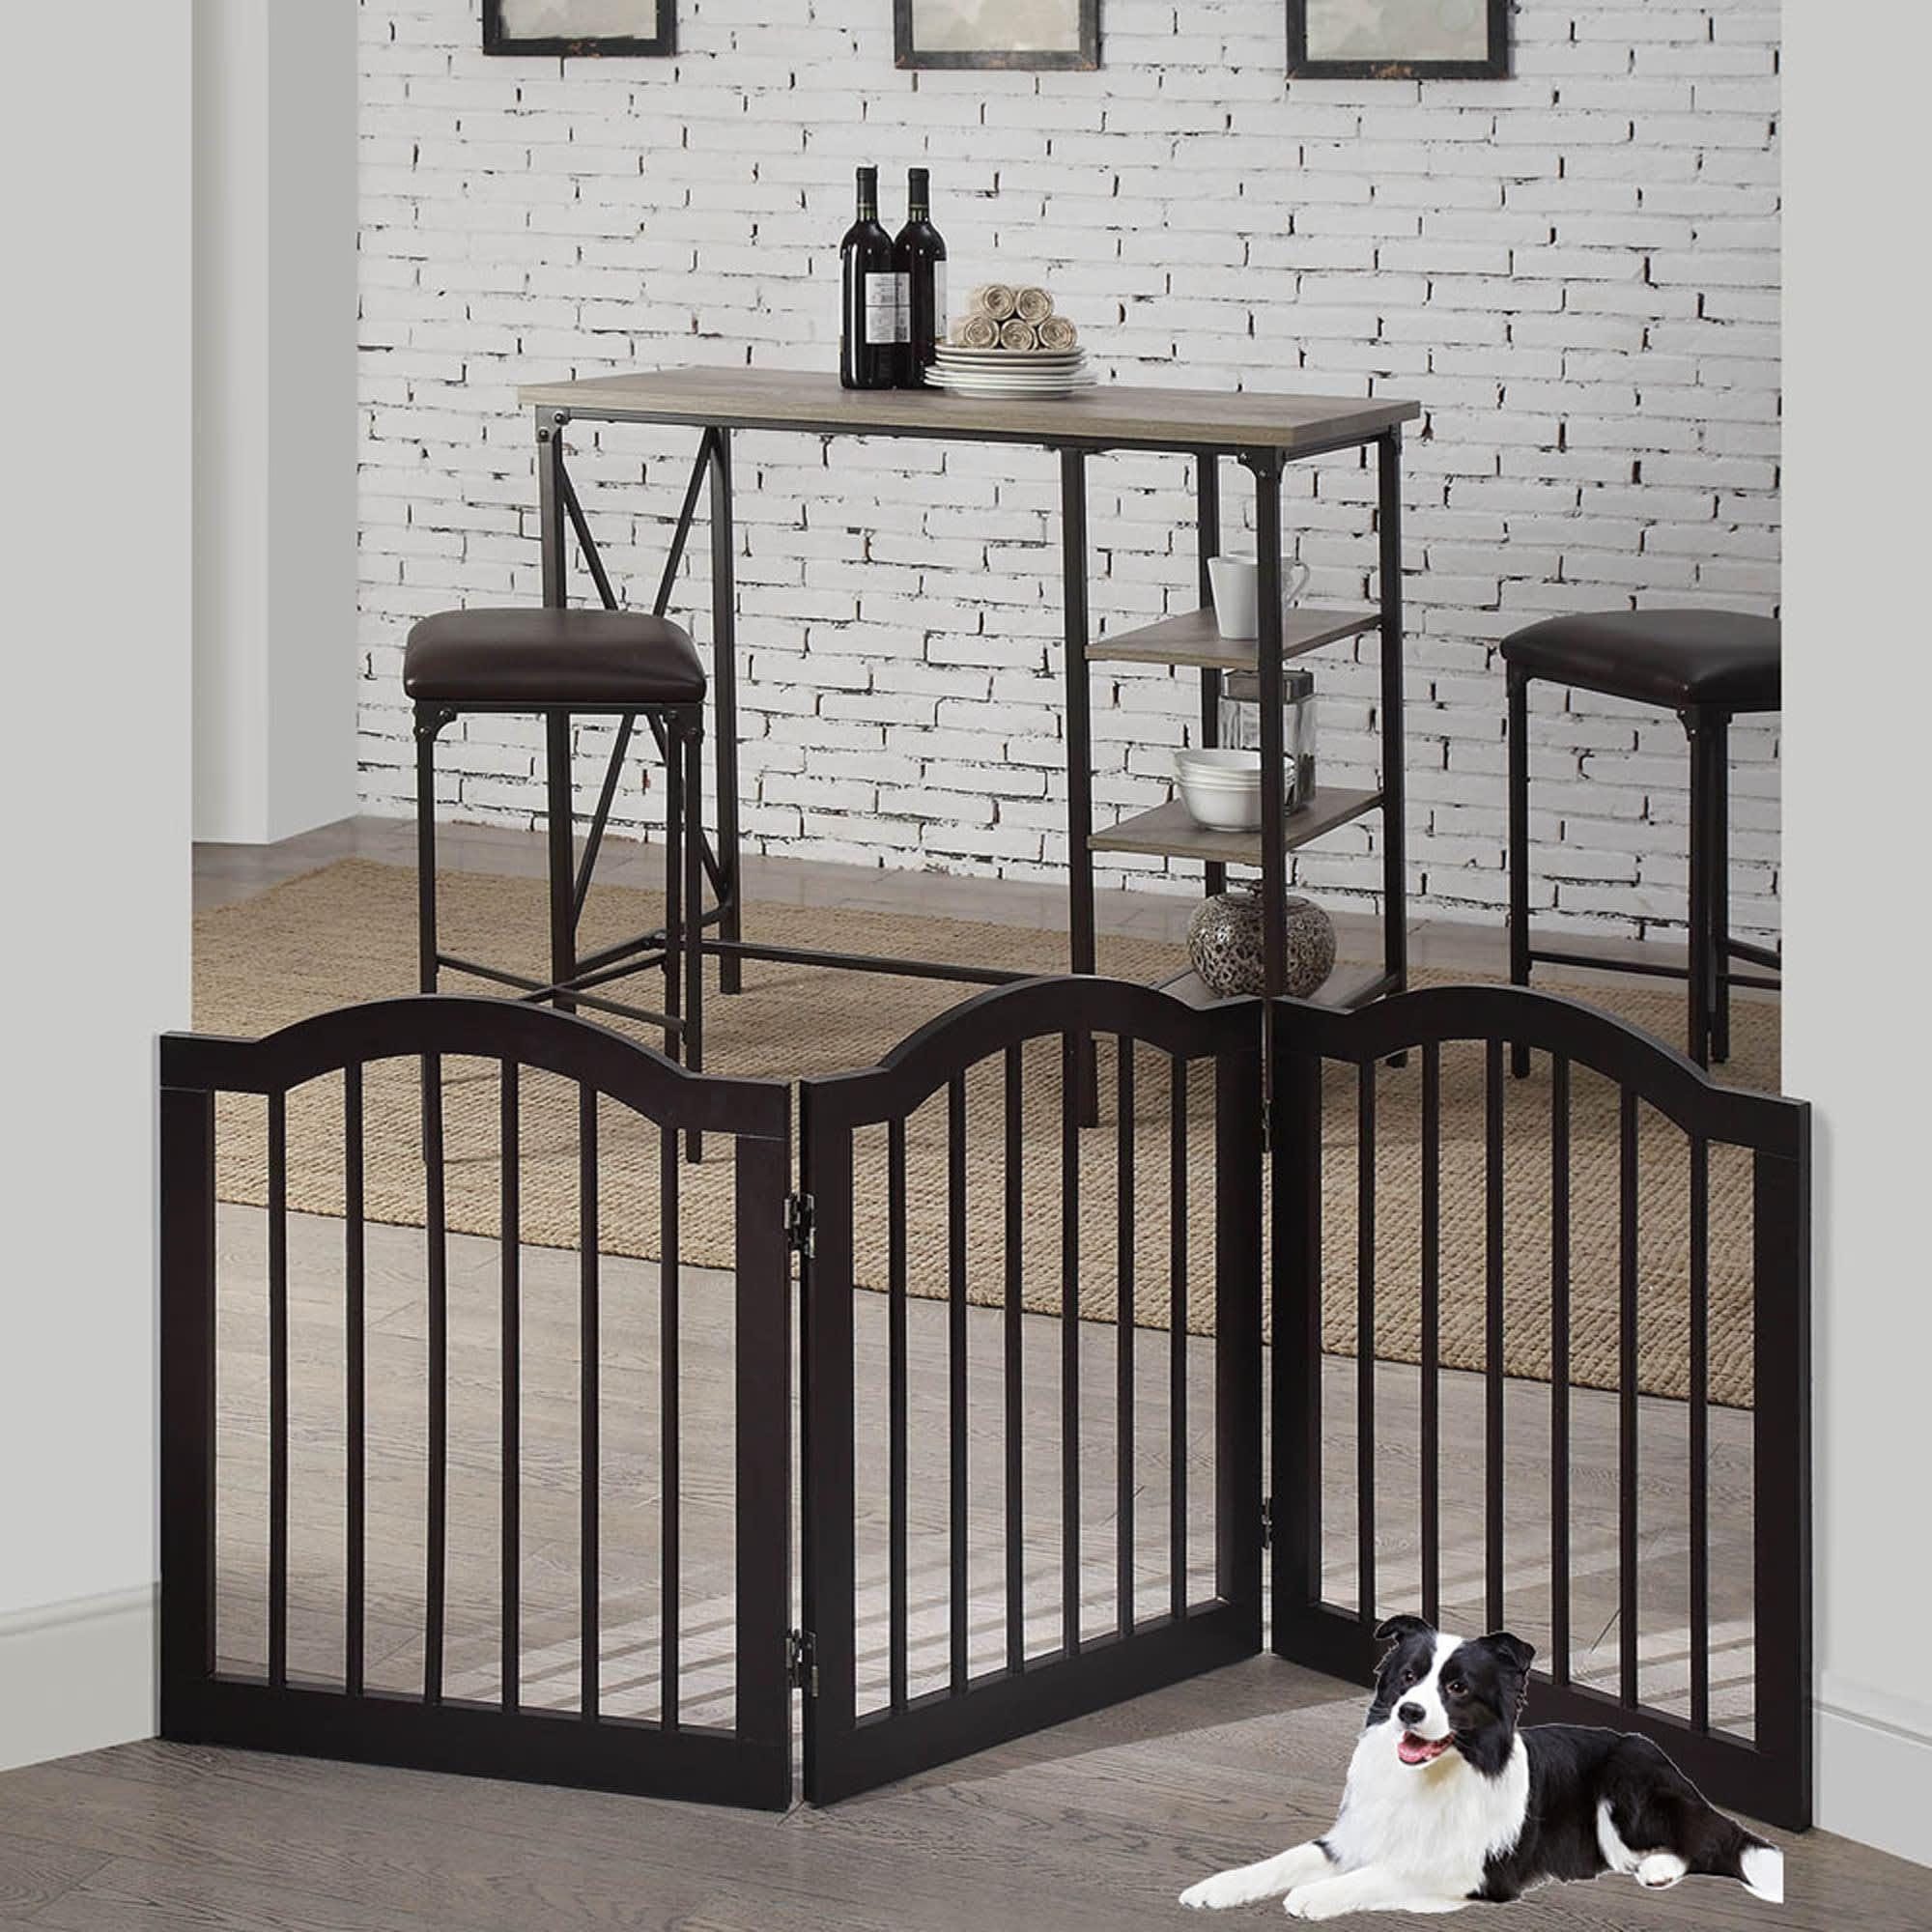 Unipaws Arched Top 3 Panel Dog Gate Espresso Freestanding 20 60 W X 24 H In 2020 Pet Gate Freestanding Dog Gate Small Doors